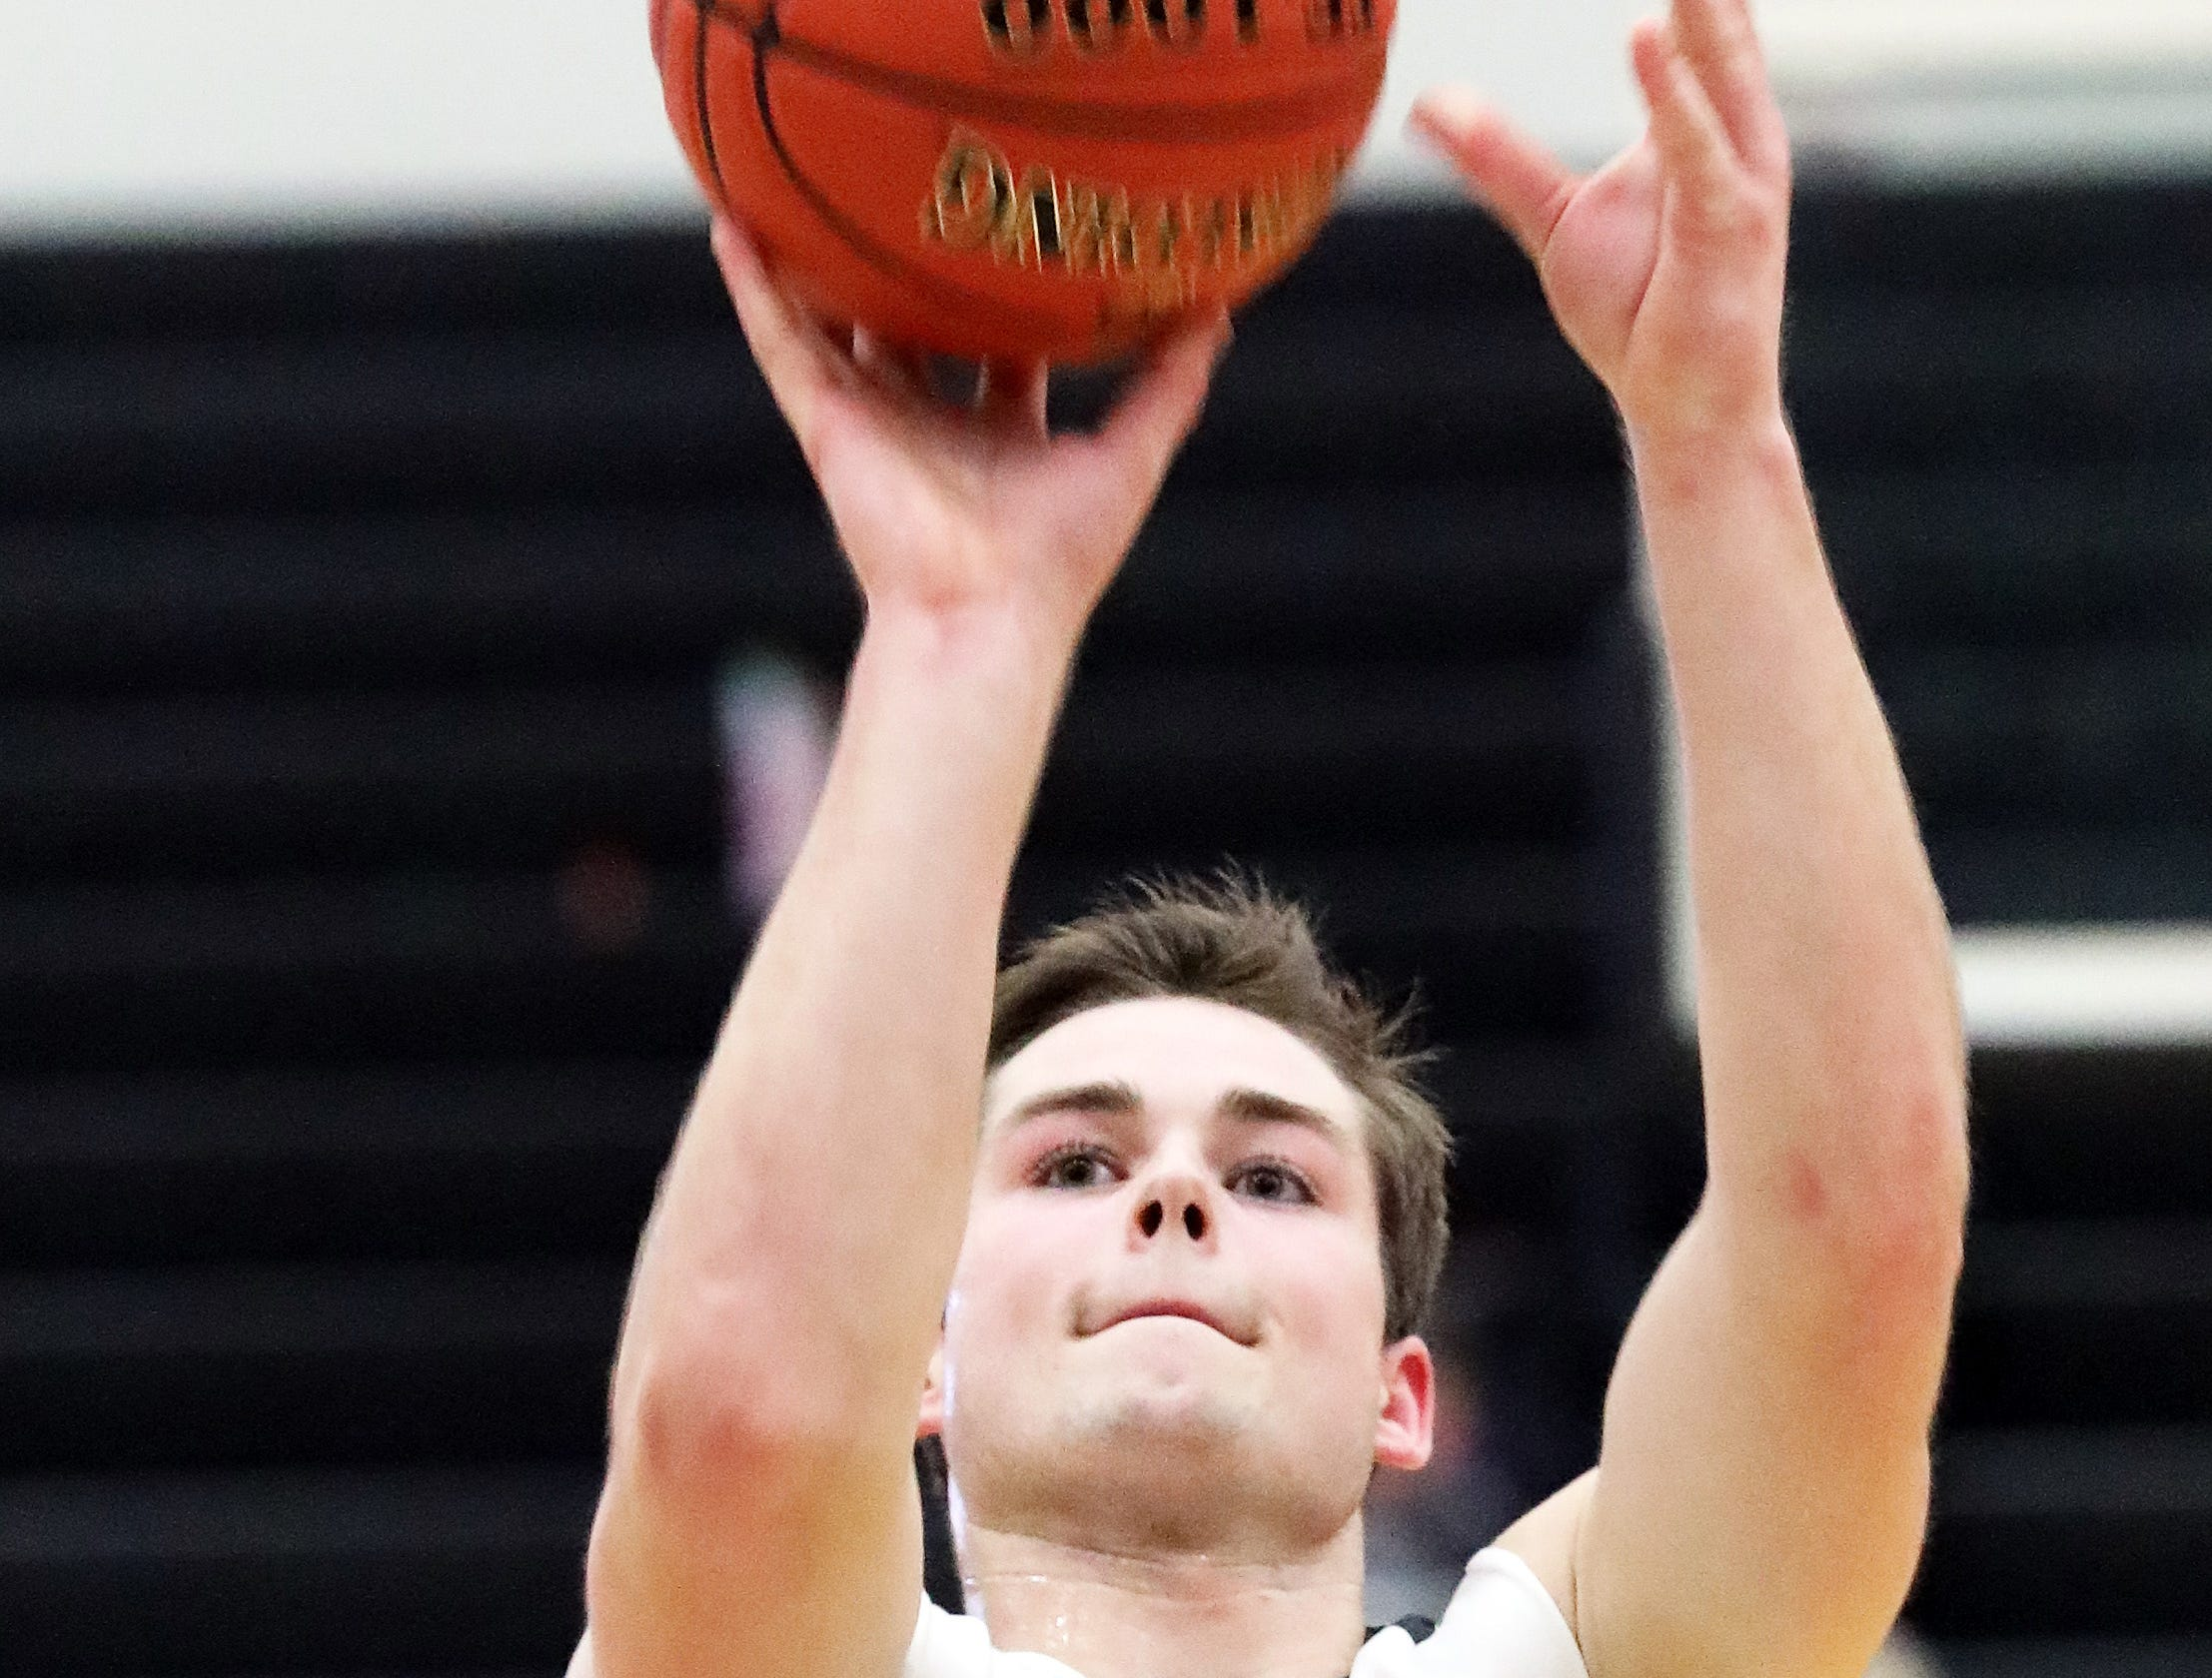 Ankeny Centennial senior Tyler Rodgers shoots a free throw as the Marshalltown Bobcats compete against the Ankeny Centennial Jaguars in high school boys basketball on Tuesday, Jan. 8, 2019 at Ankeny Centennial High.